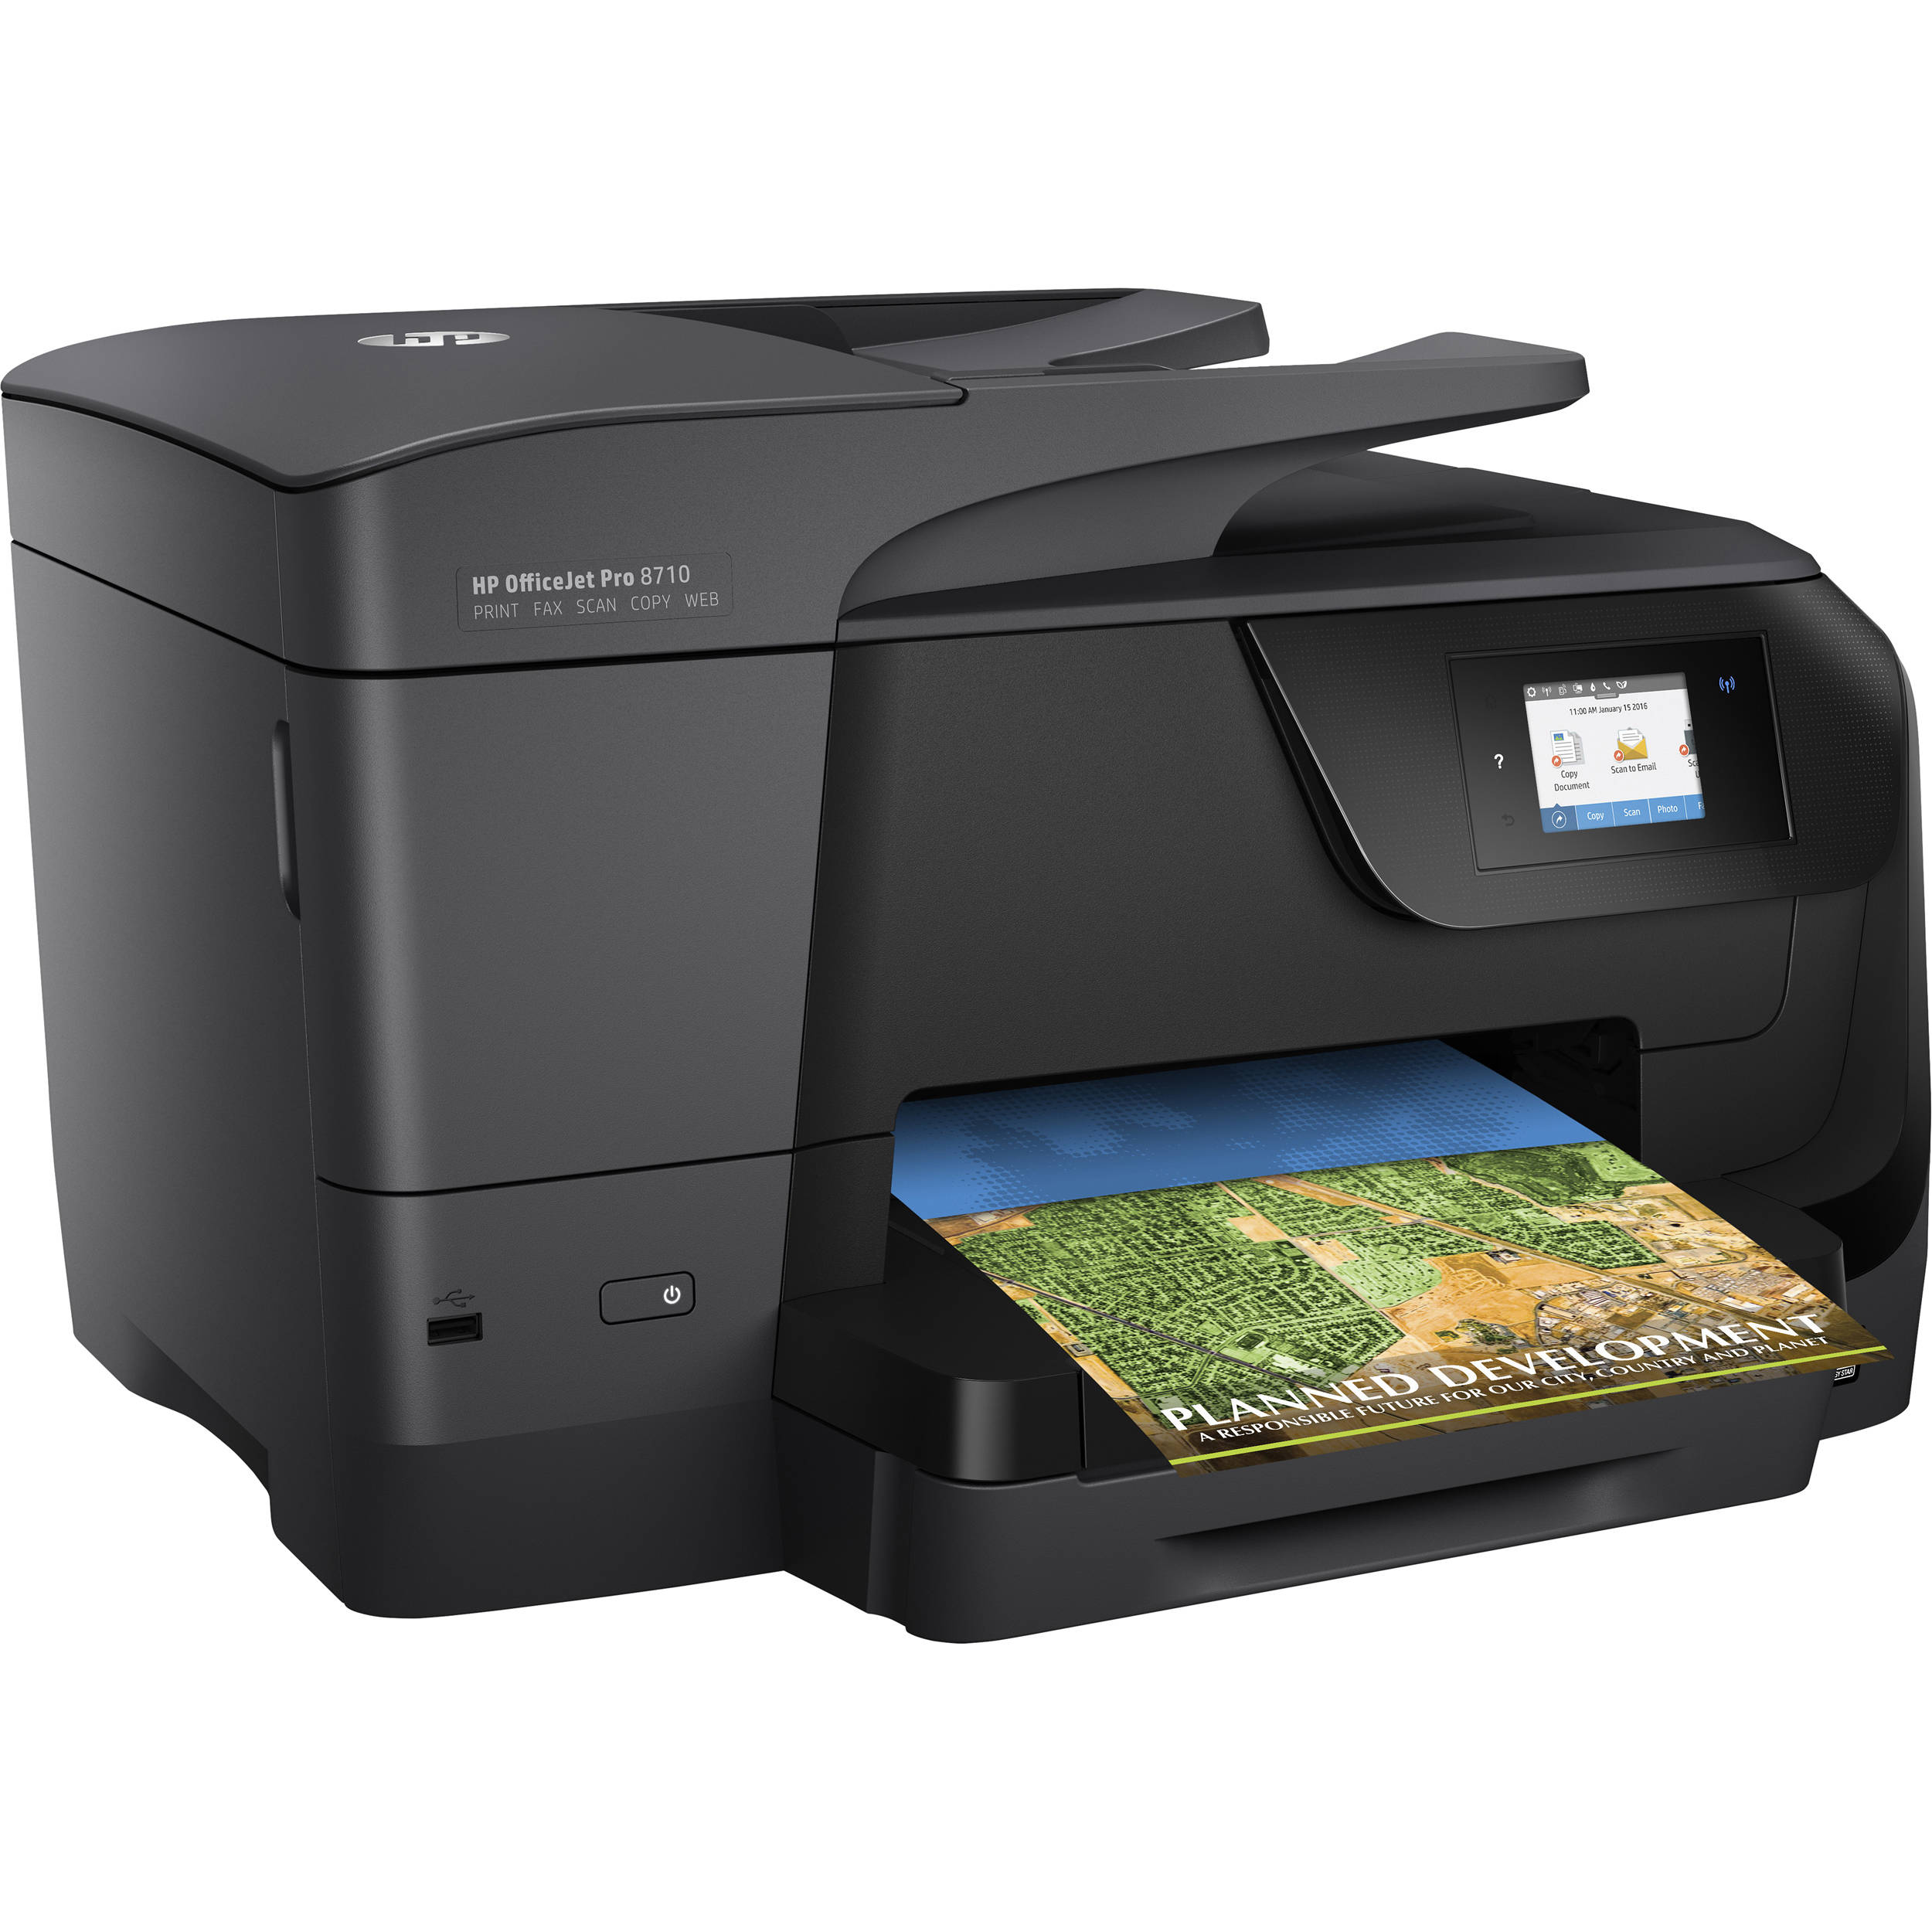 New HP OfficeJet Pro 8710 All-in-One Inkjet Wireless Printer Scan Copy Fax AIO